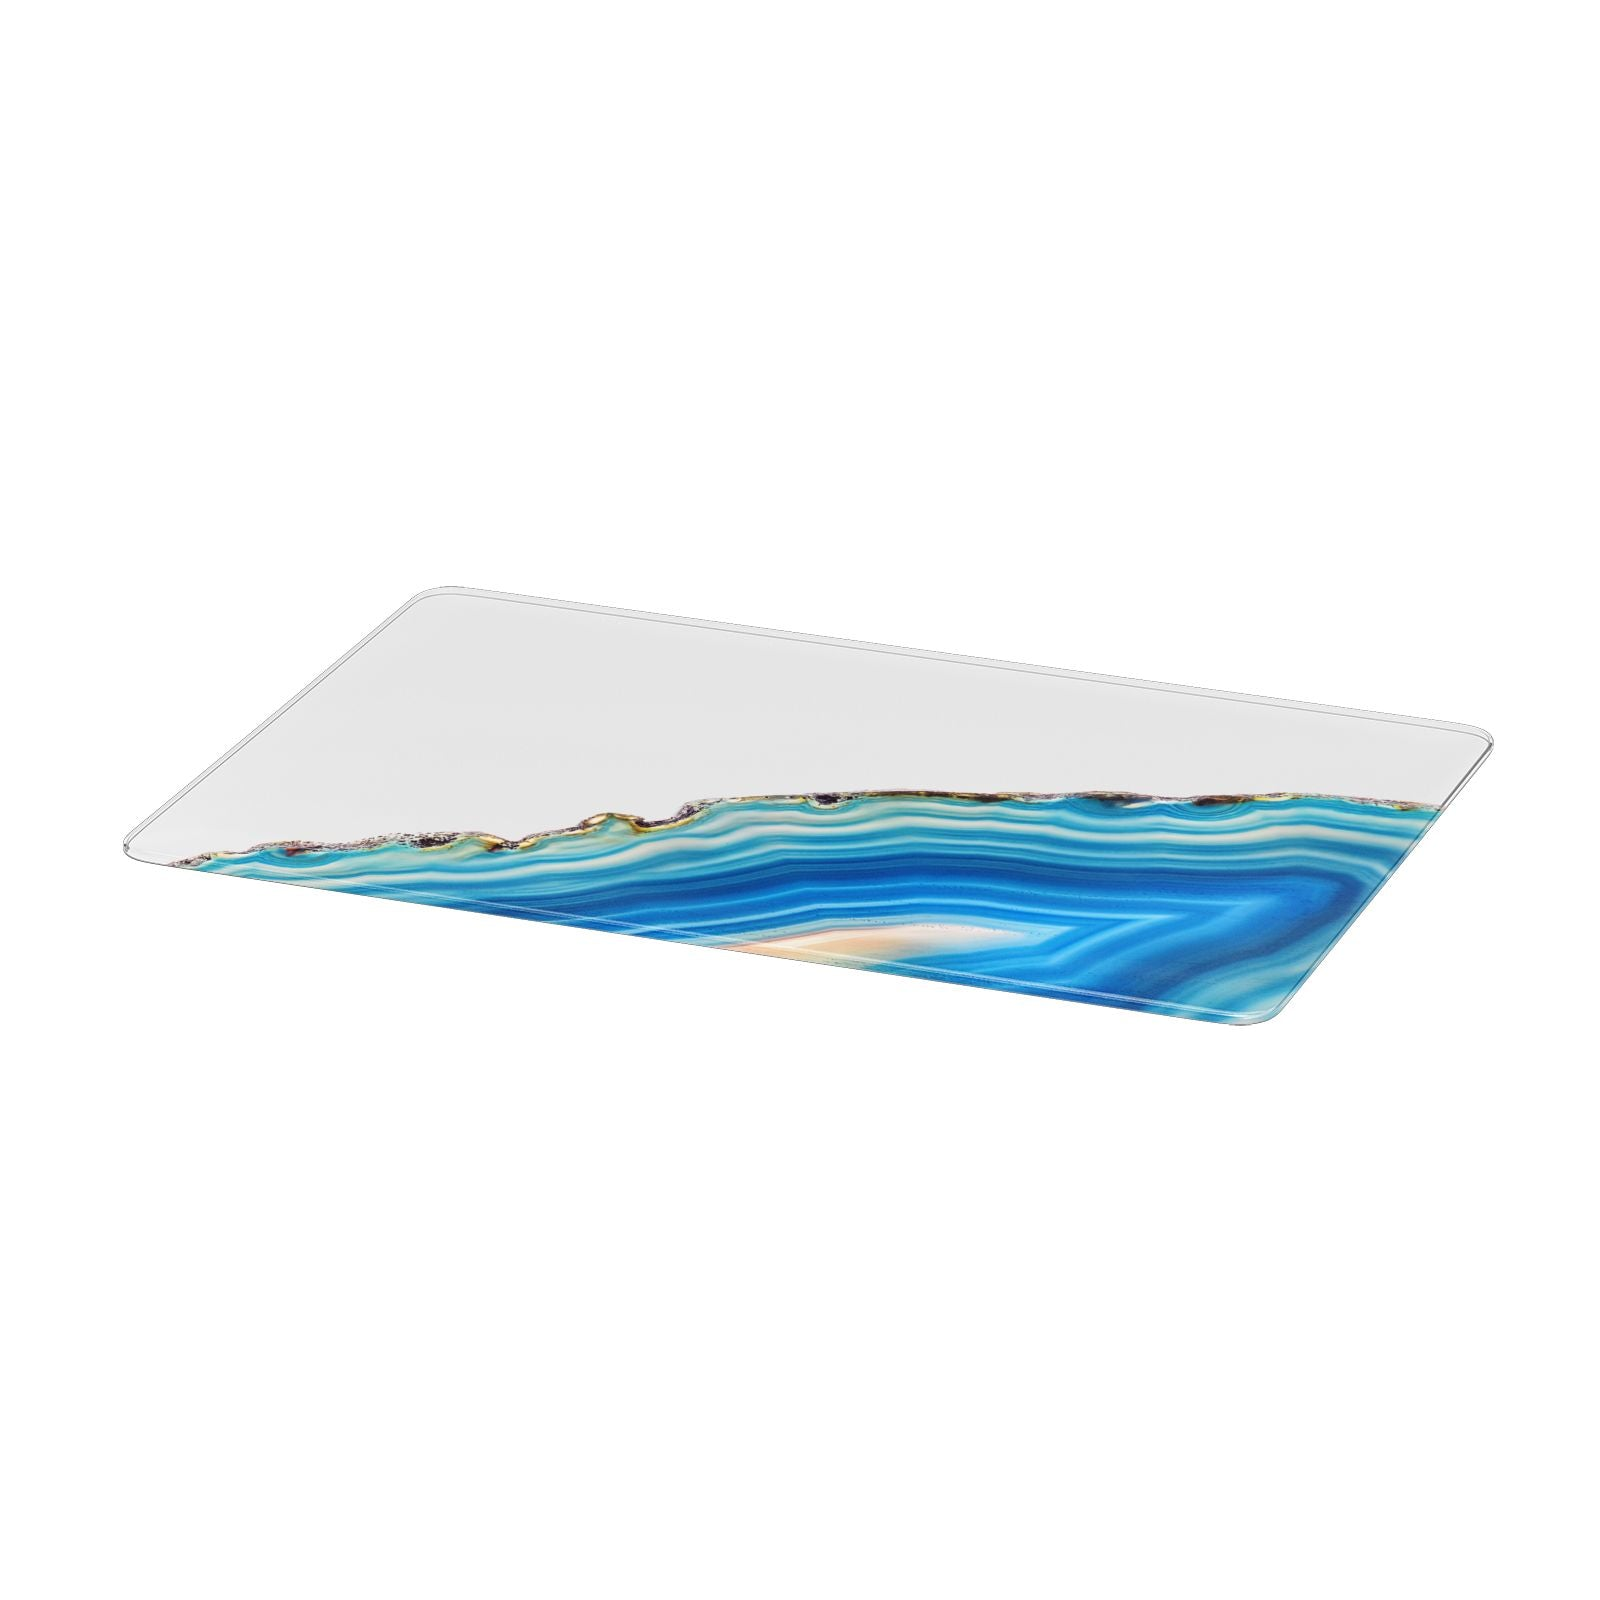 Agate Pale Blue and Bright Blue Apple MacBook Case Only